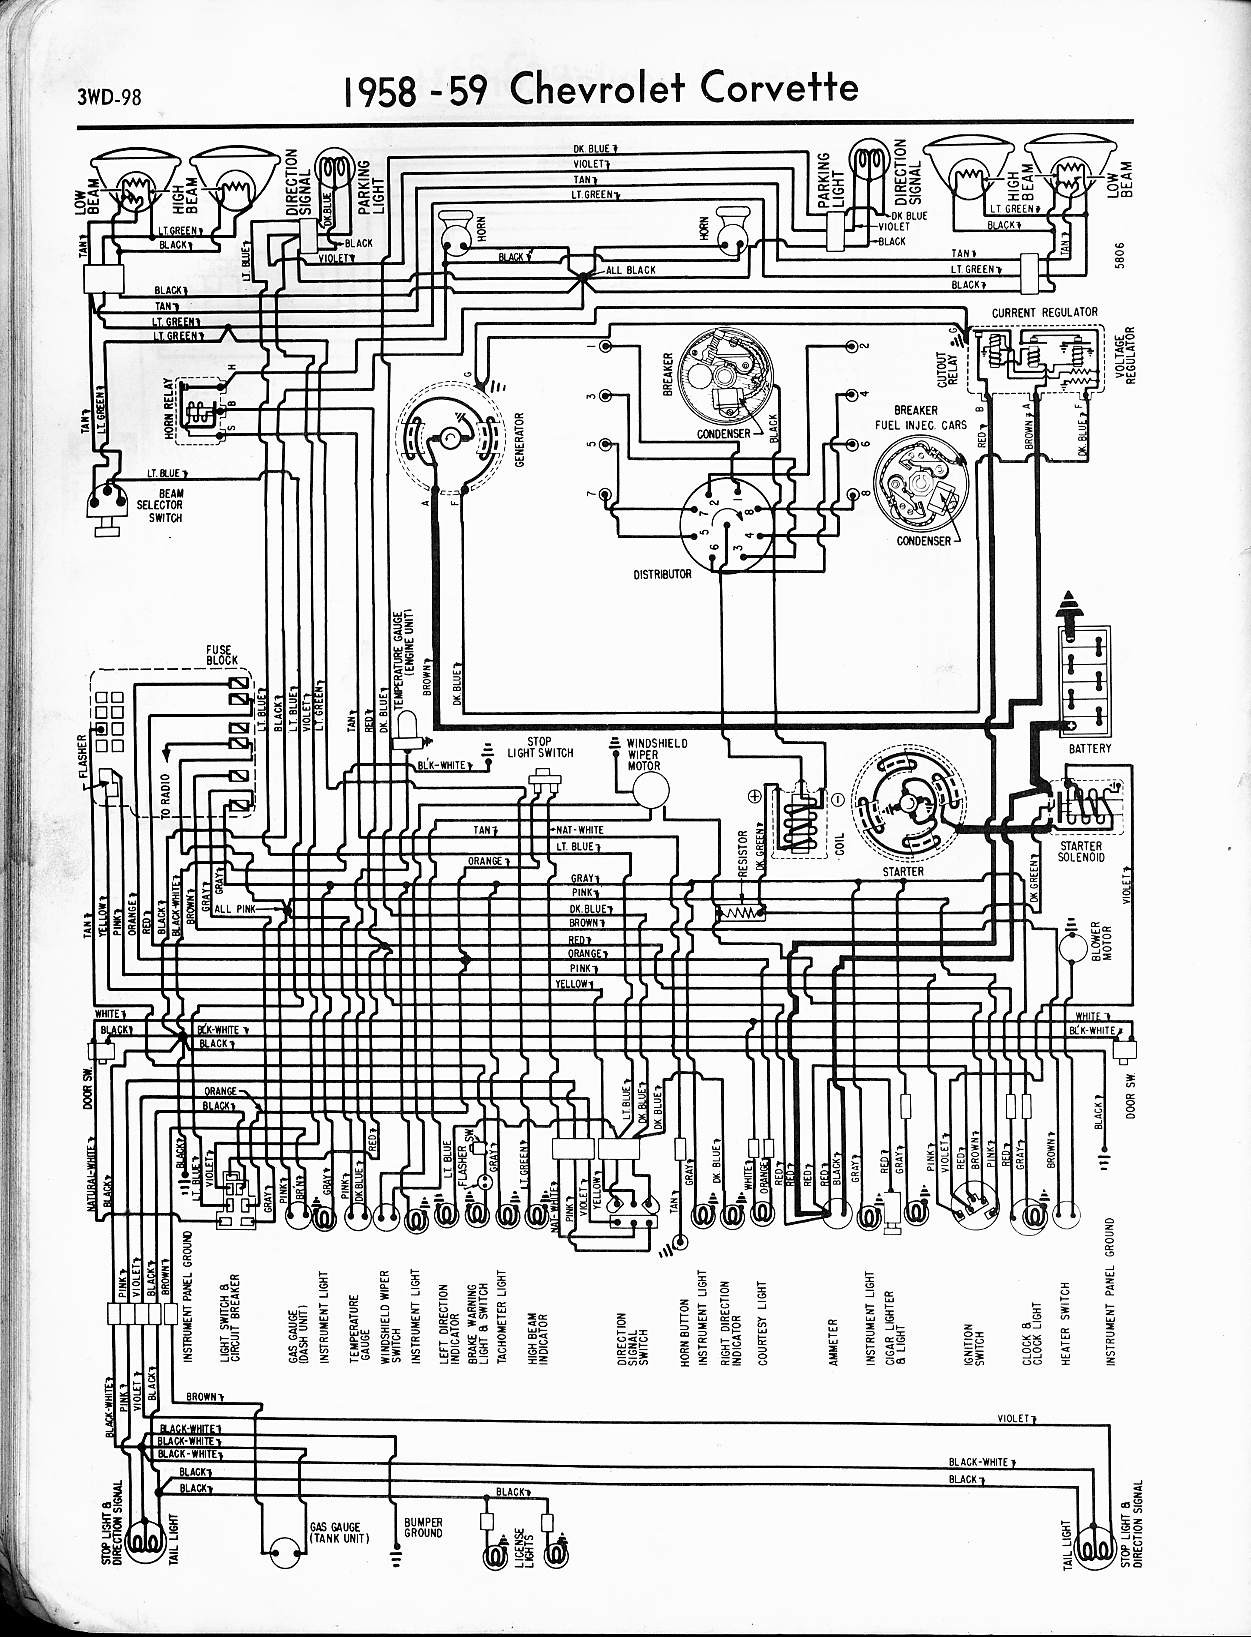 2001 Corvette Wiring Schematic List Of Circuit Diagram Washburn Ss0207249 1979 Headlight Vw Rh Detoxicrecenze Com